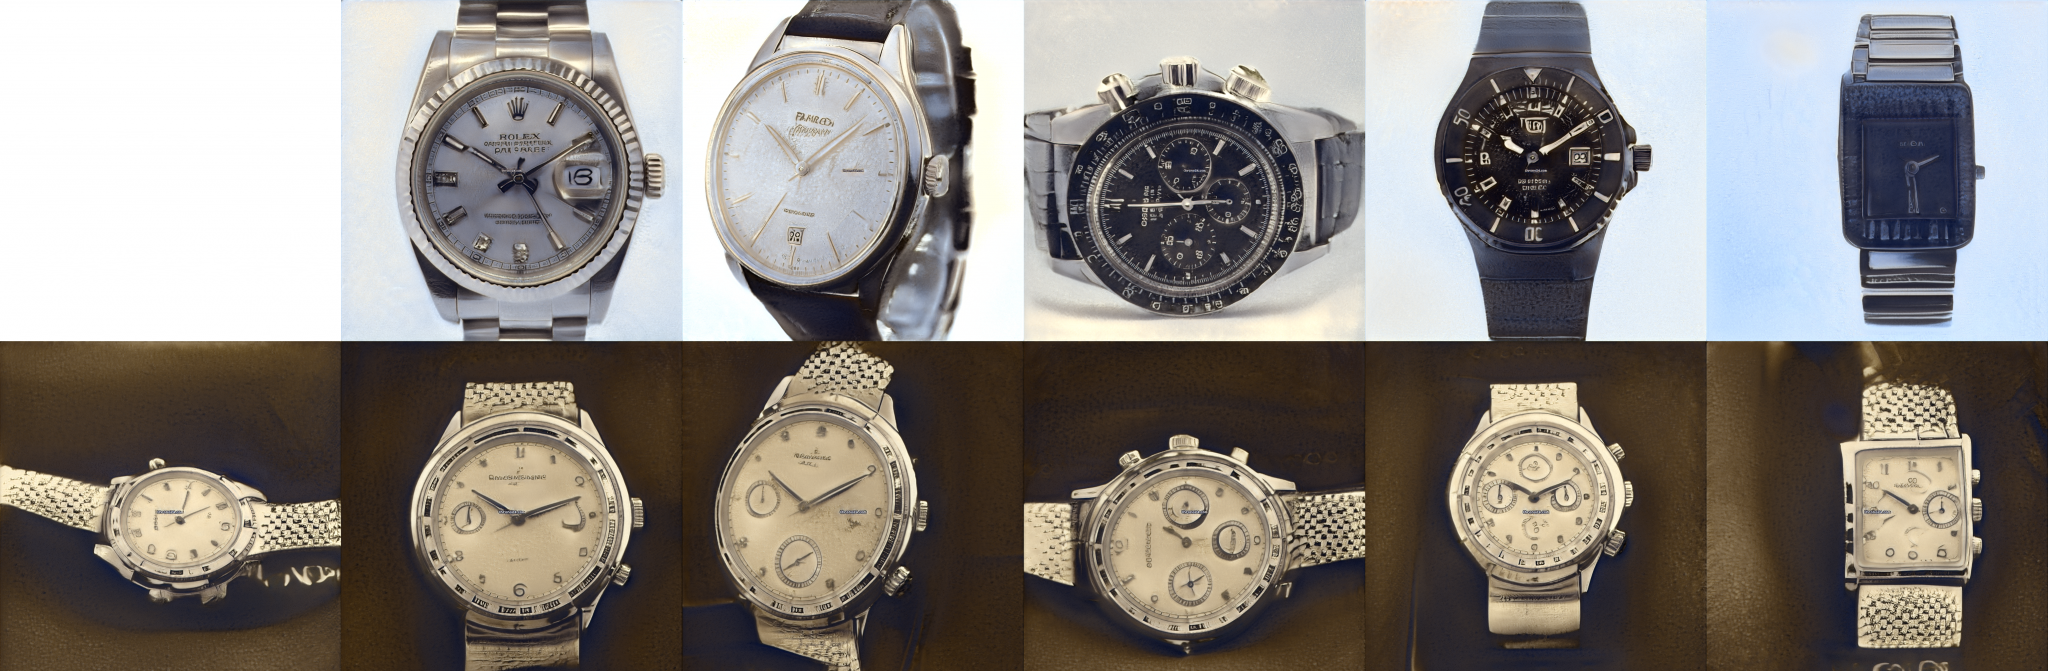 WatchGAN: Advancing generated watch images with styleGANs